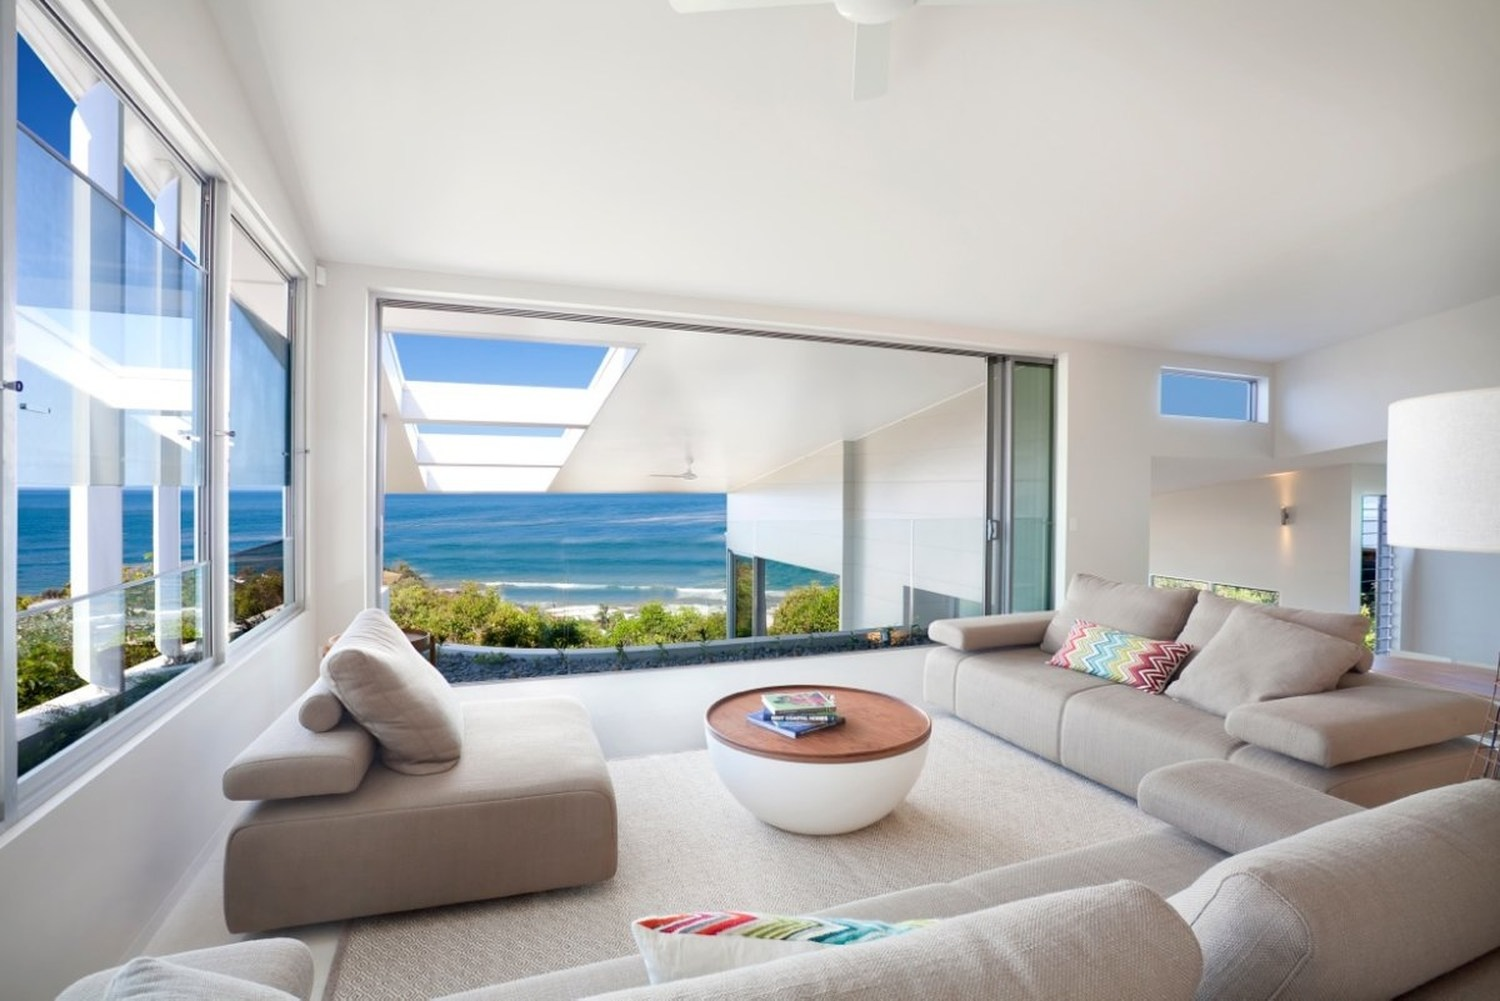 Coolum Bays Beach House by Aboda Design Group | KARMATRENDZ